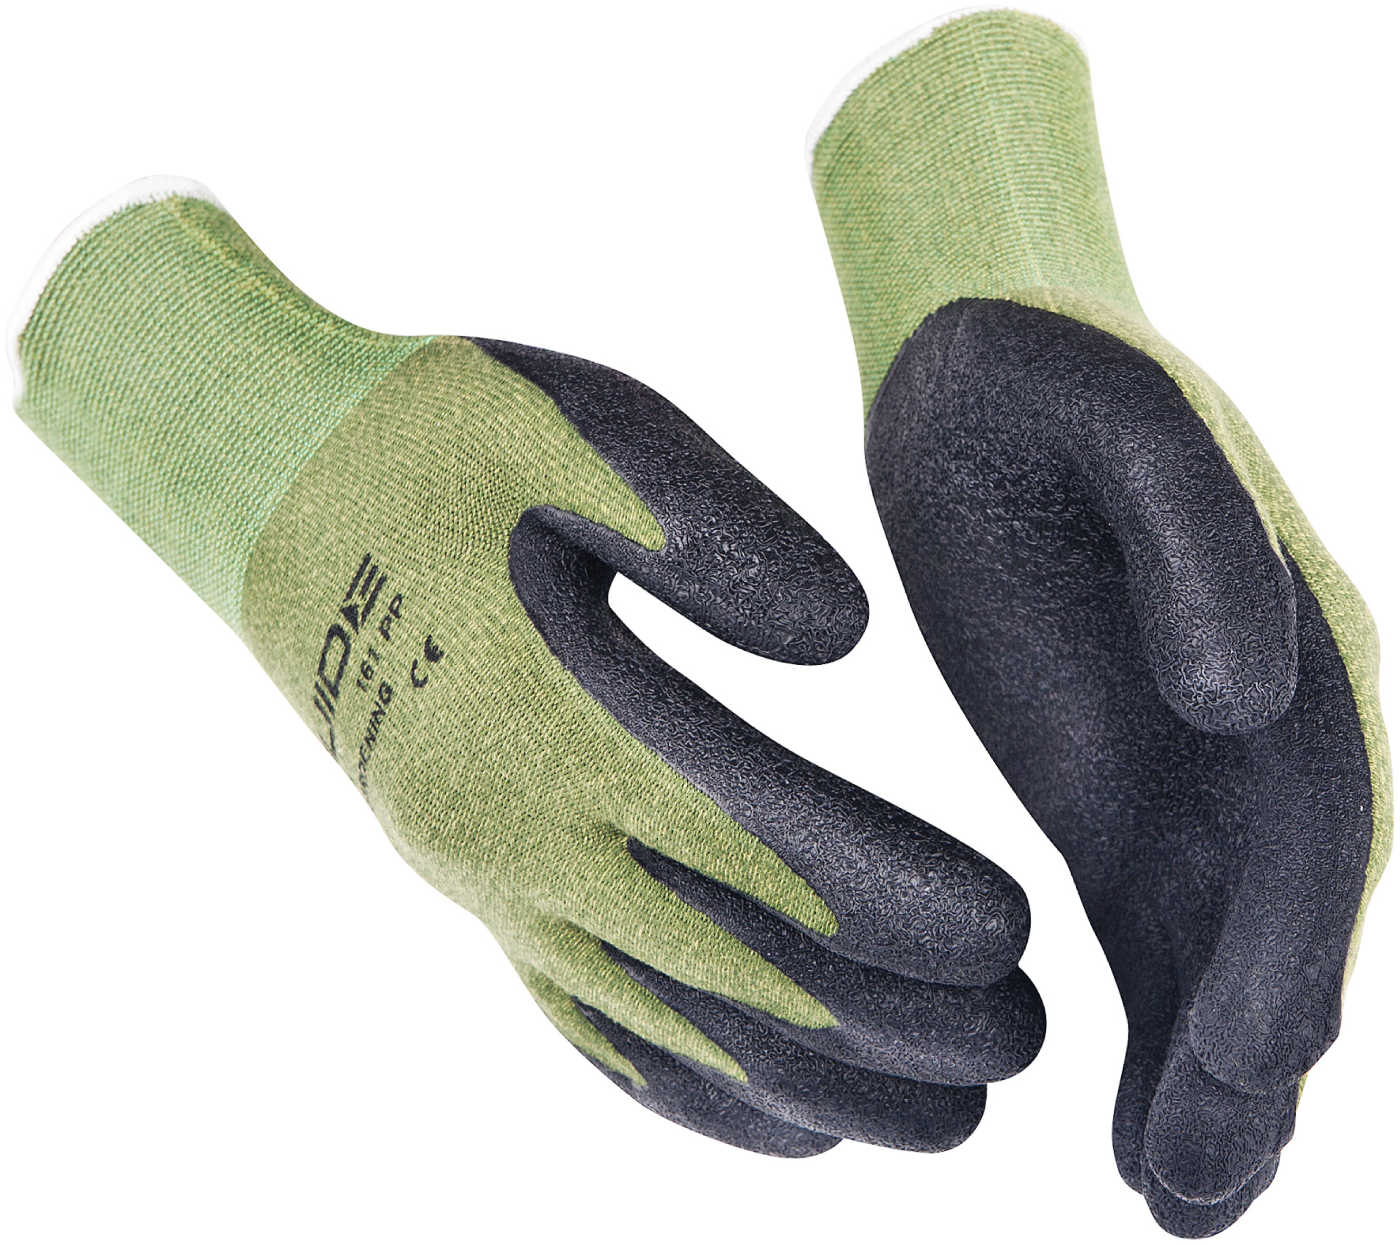 Working Glove GUIDE 161